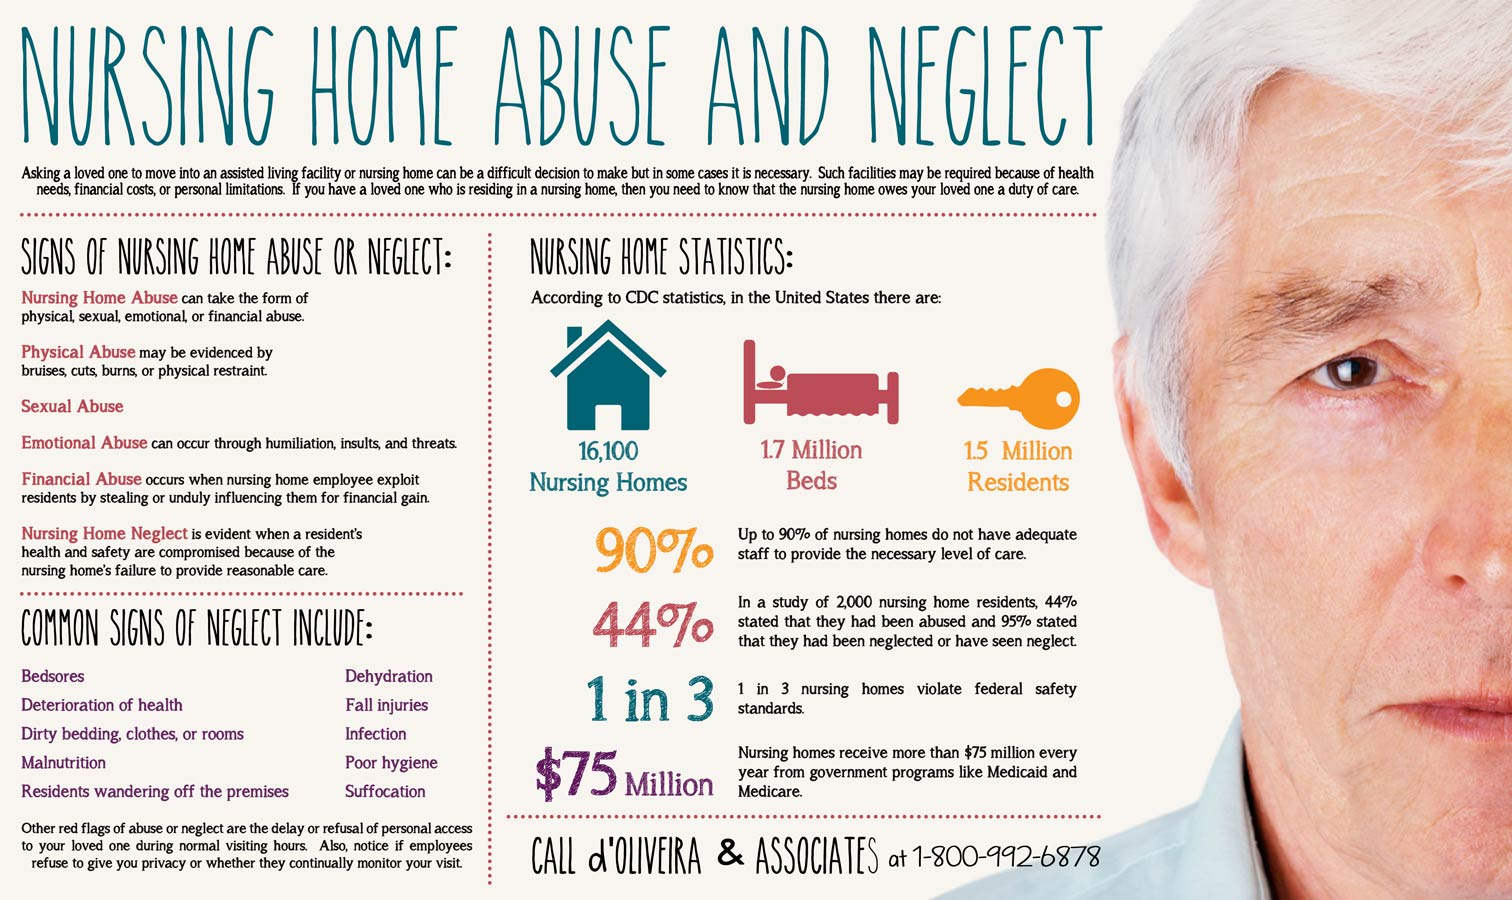 nursing-home-abuse-and-neglect-lawyer-infographic.jpg